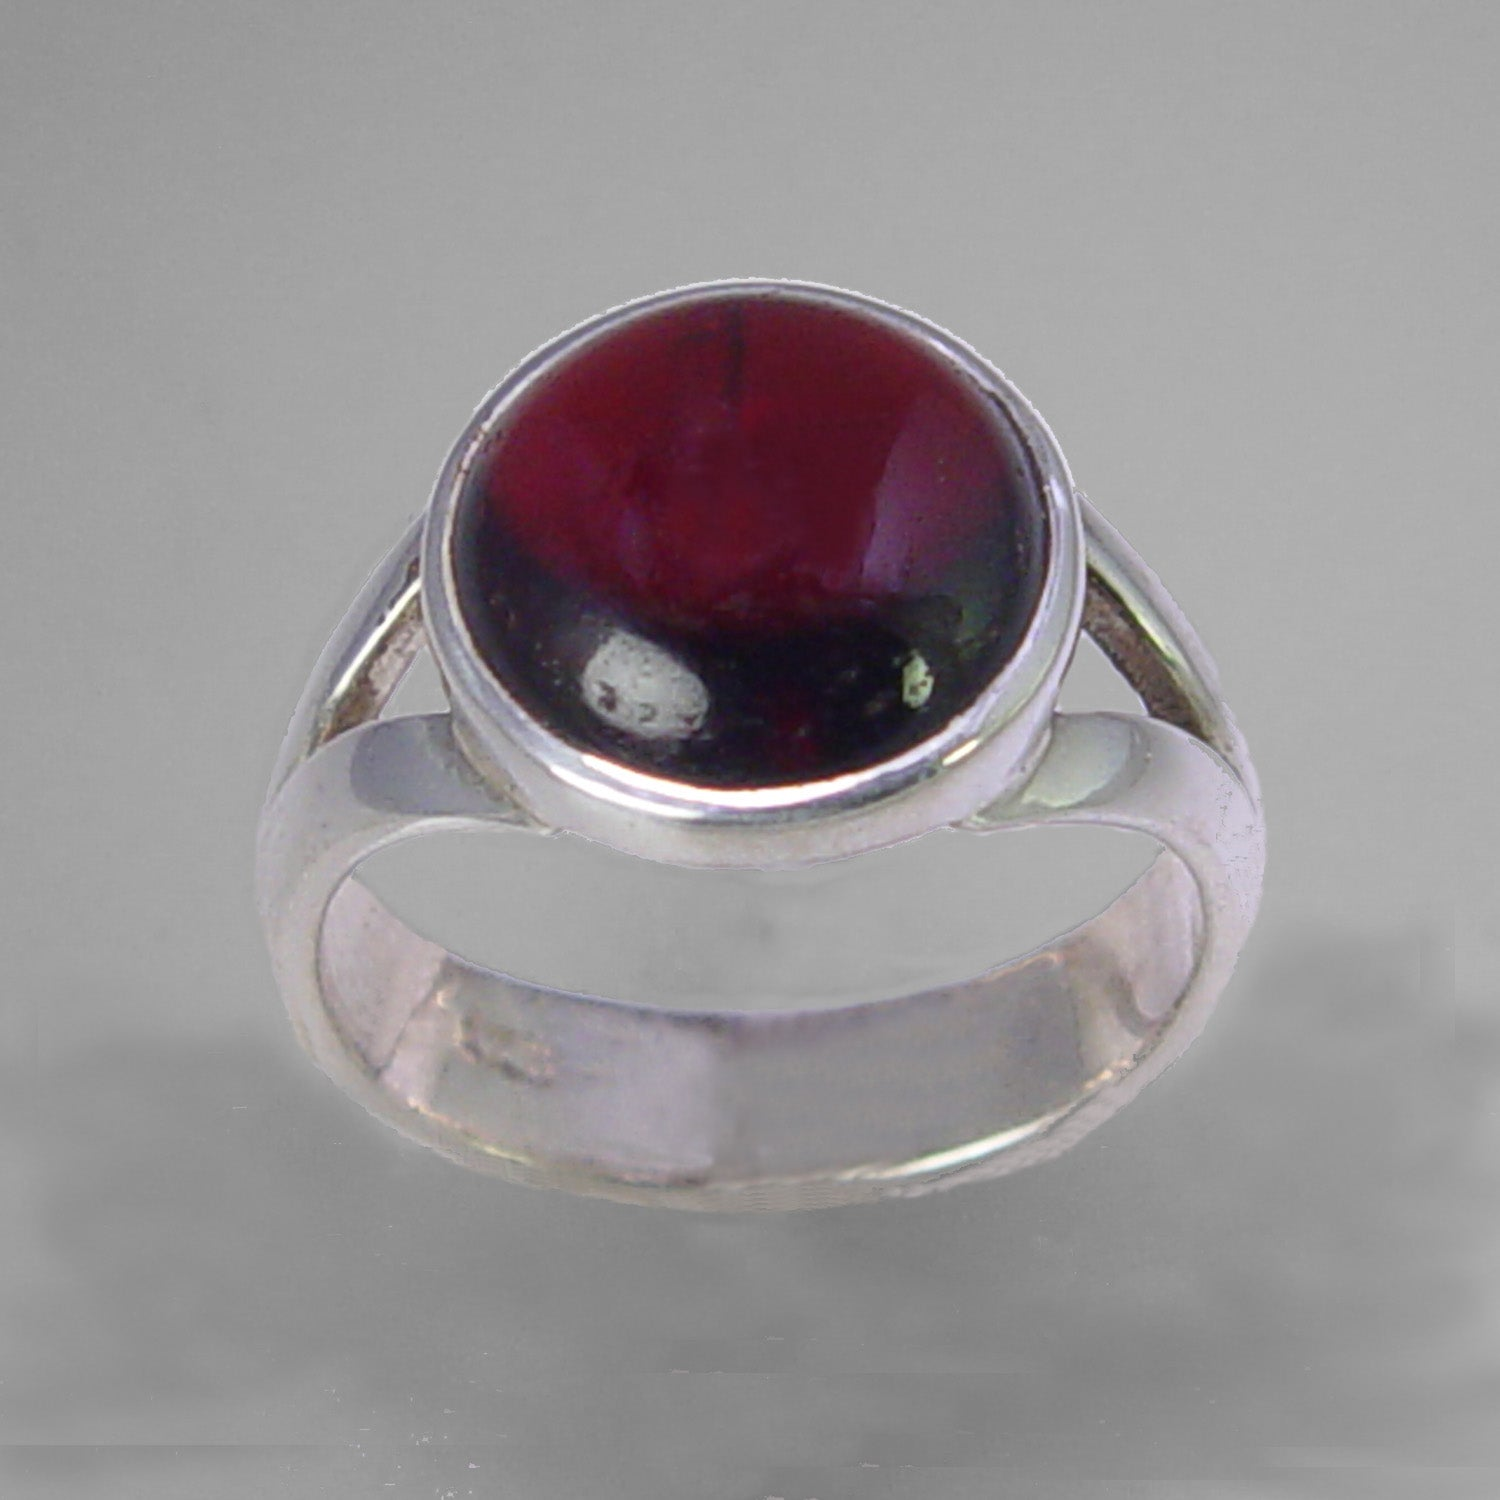 Garnet 4.6 ct Round Cab Sterling Silver Ring, Size 7